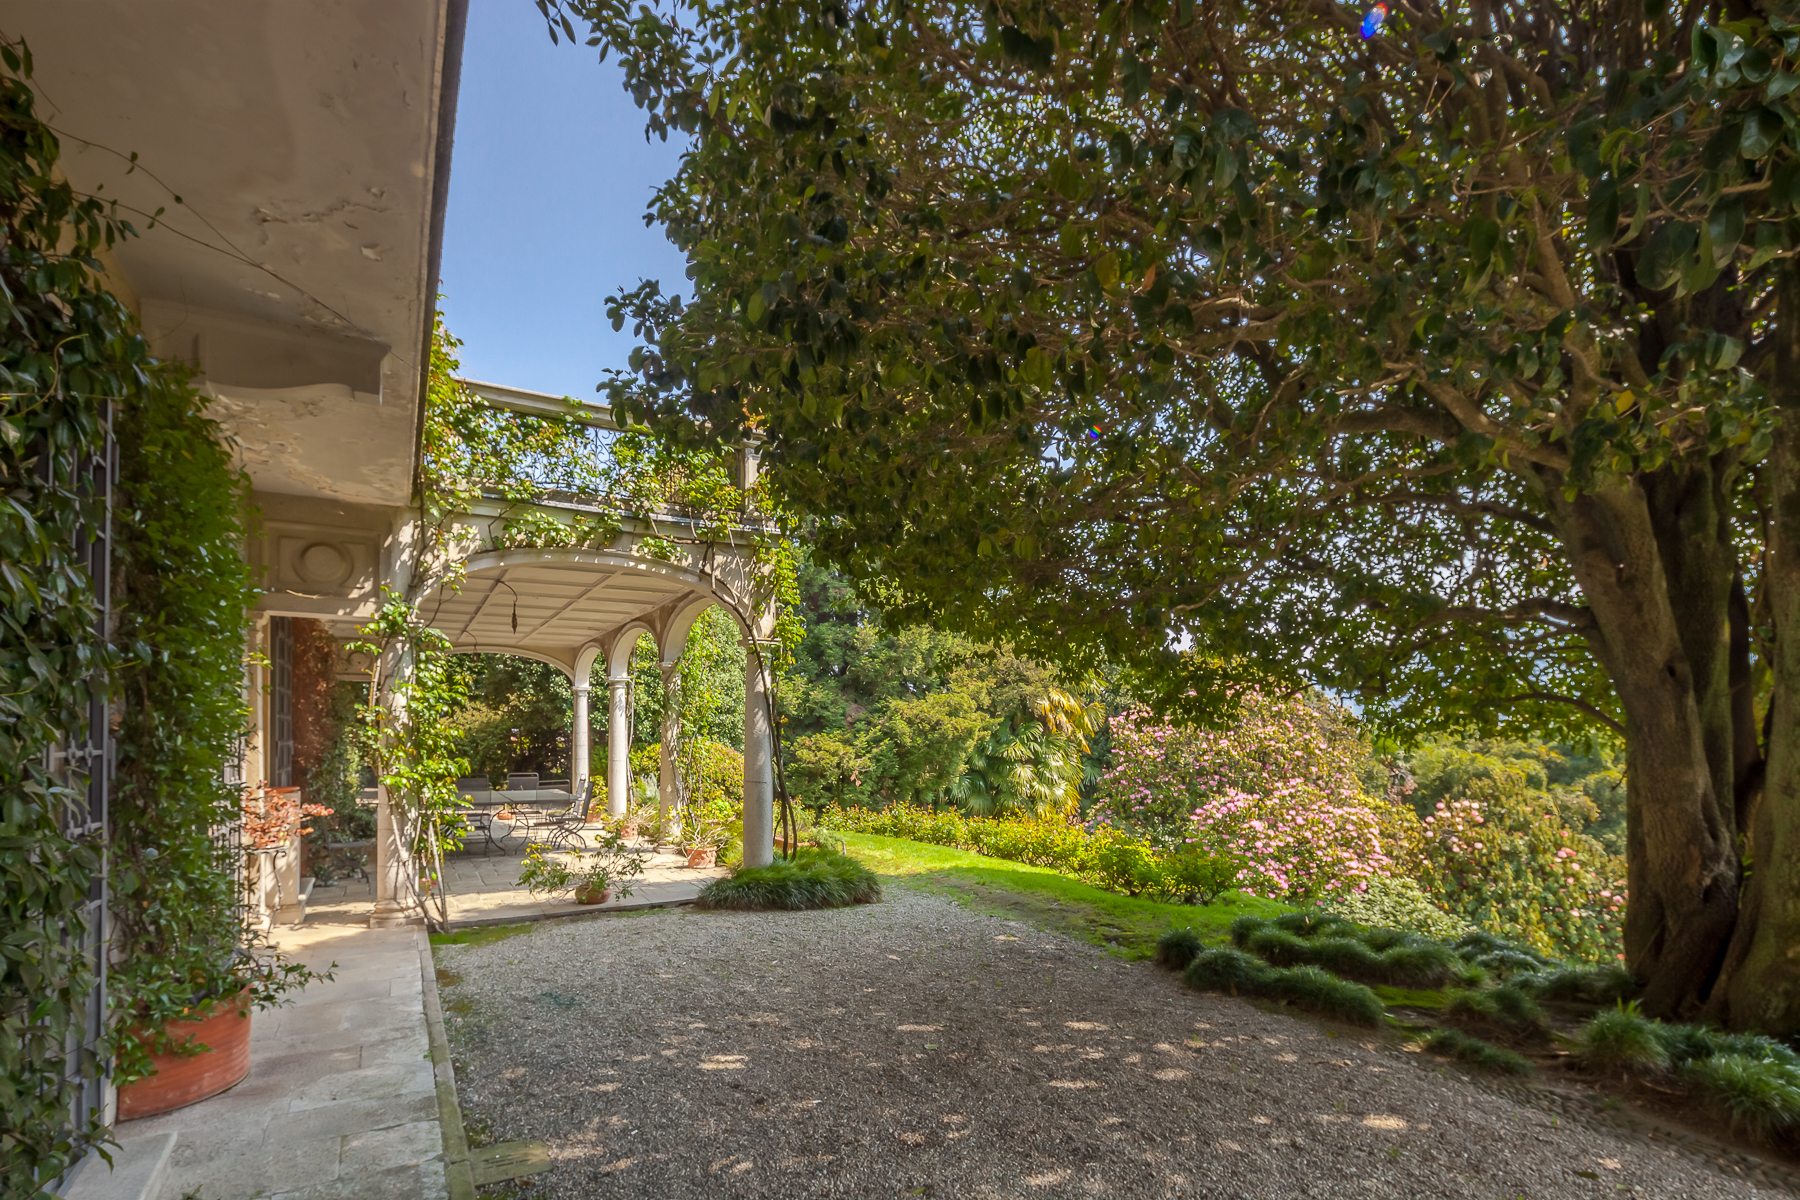 Additional photo for property listing at Early 20th century villa with centuries-old park and lake view Verbania, Verbano Cusio Ossola Italy